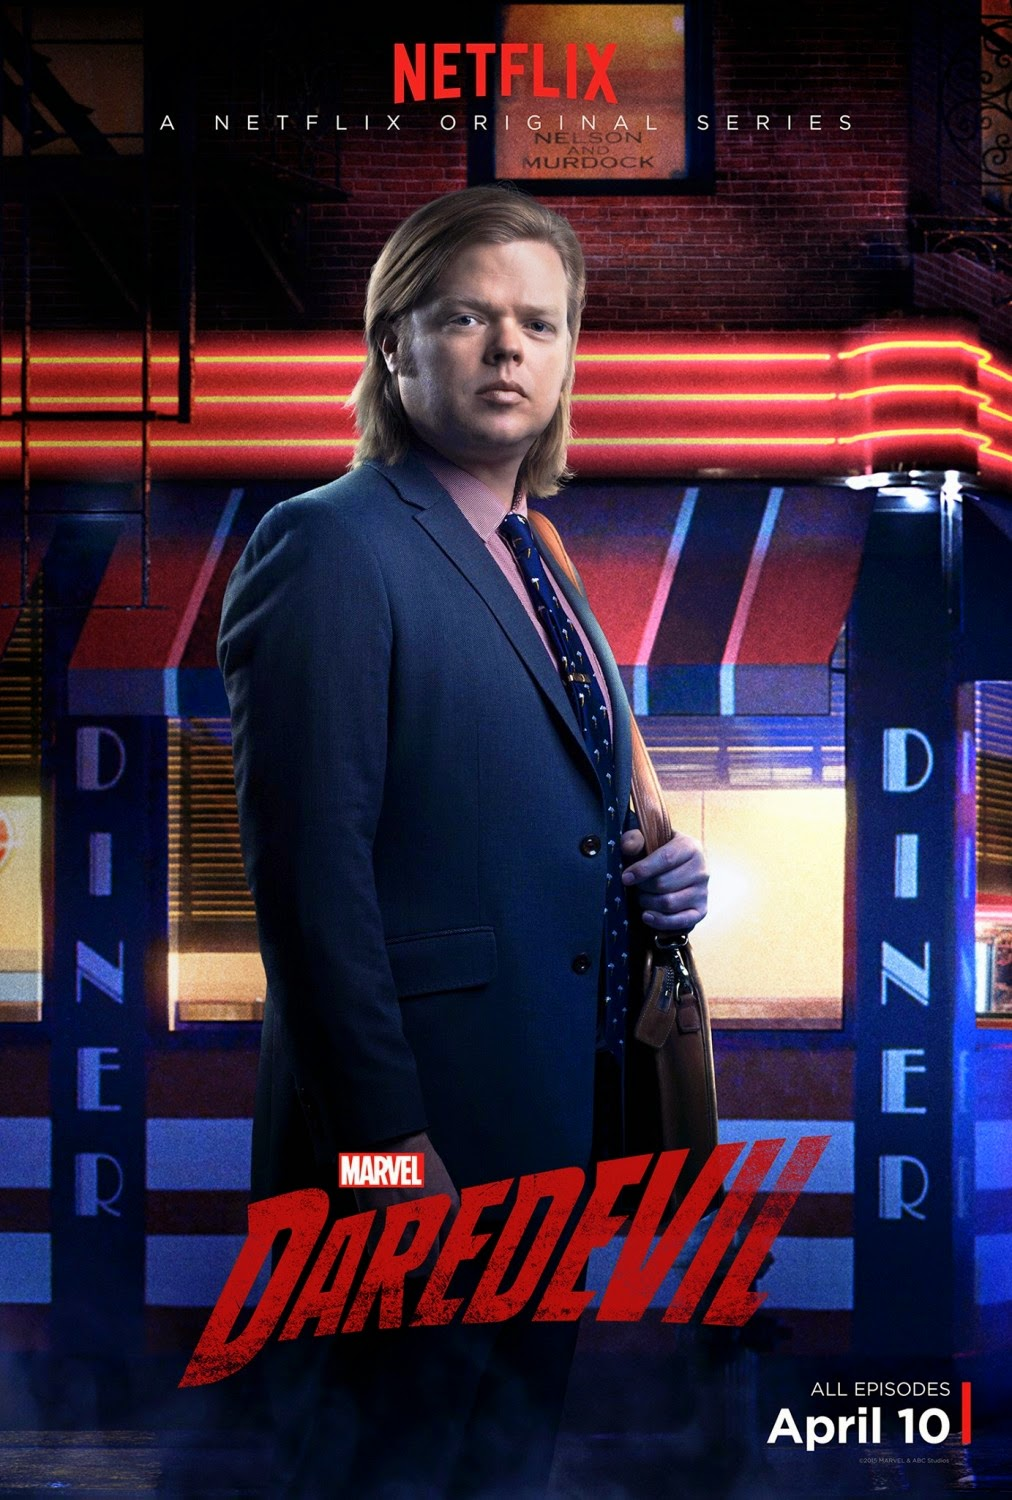 Marvel's Daredevil Character Television Poster Set - Elden Henson as Foggy Nelson